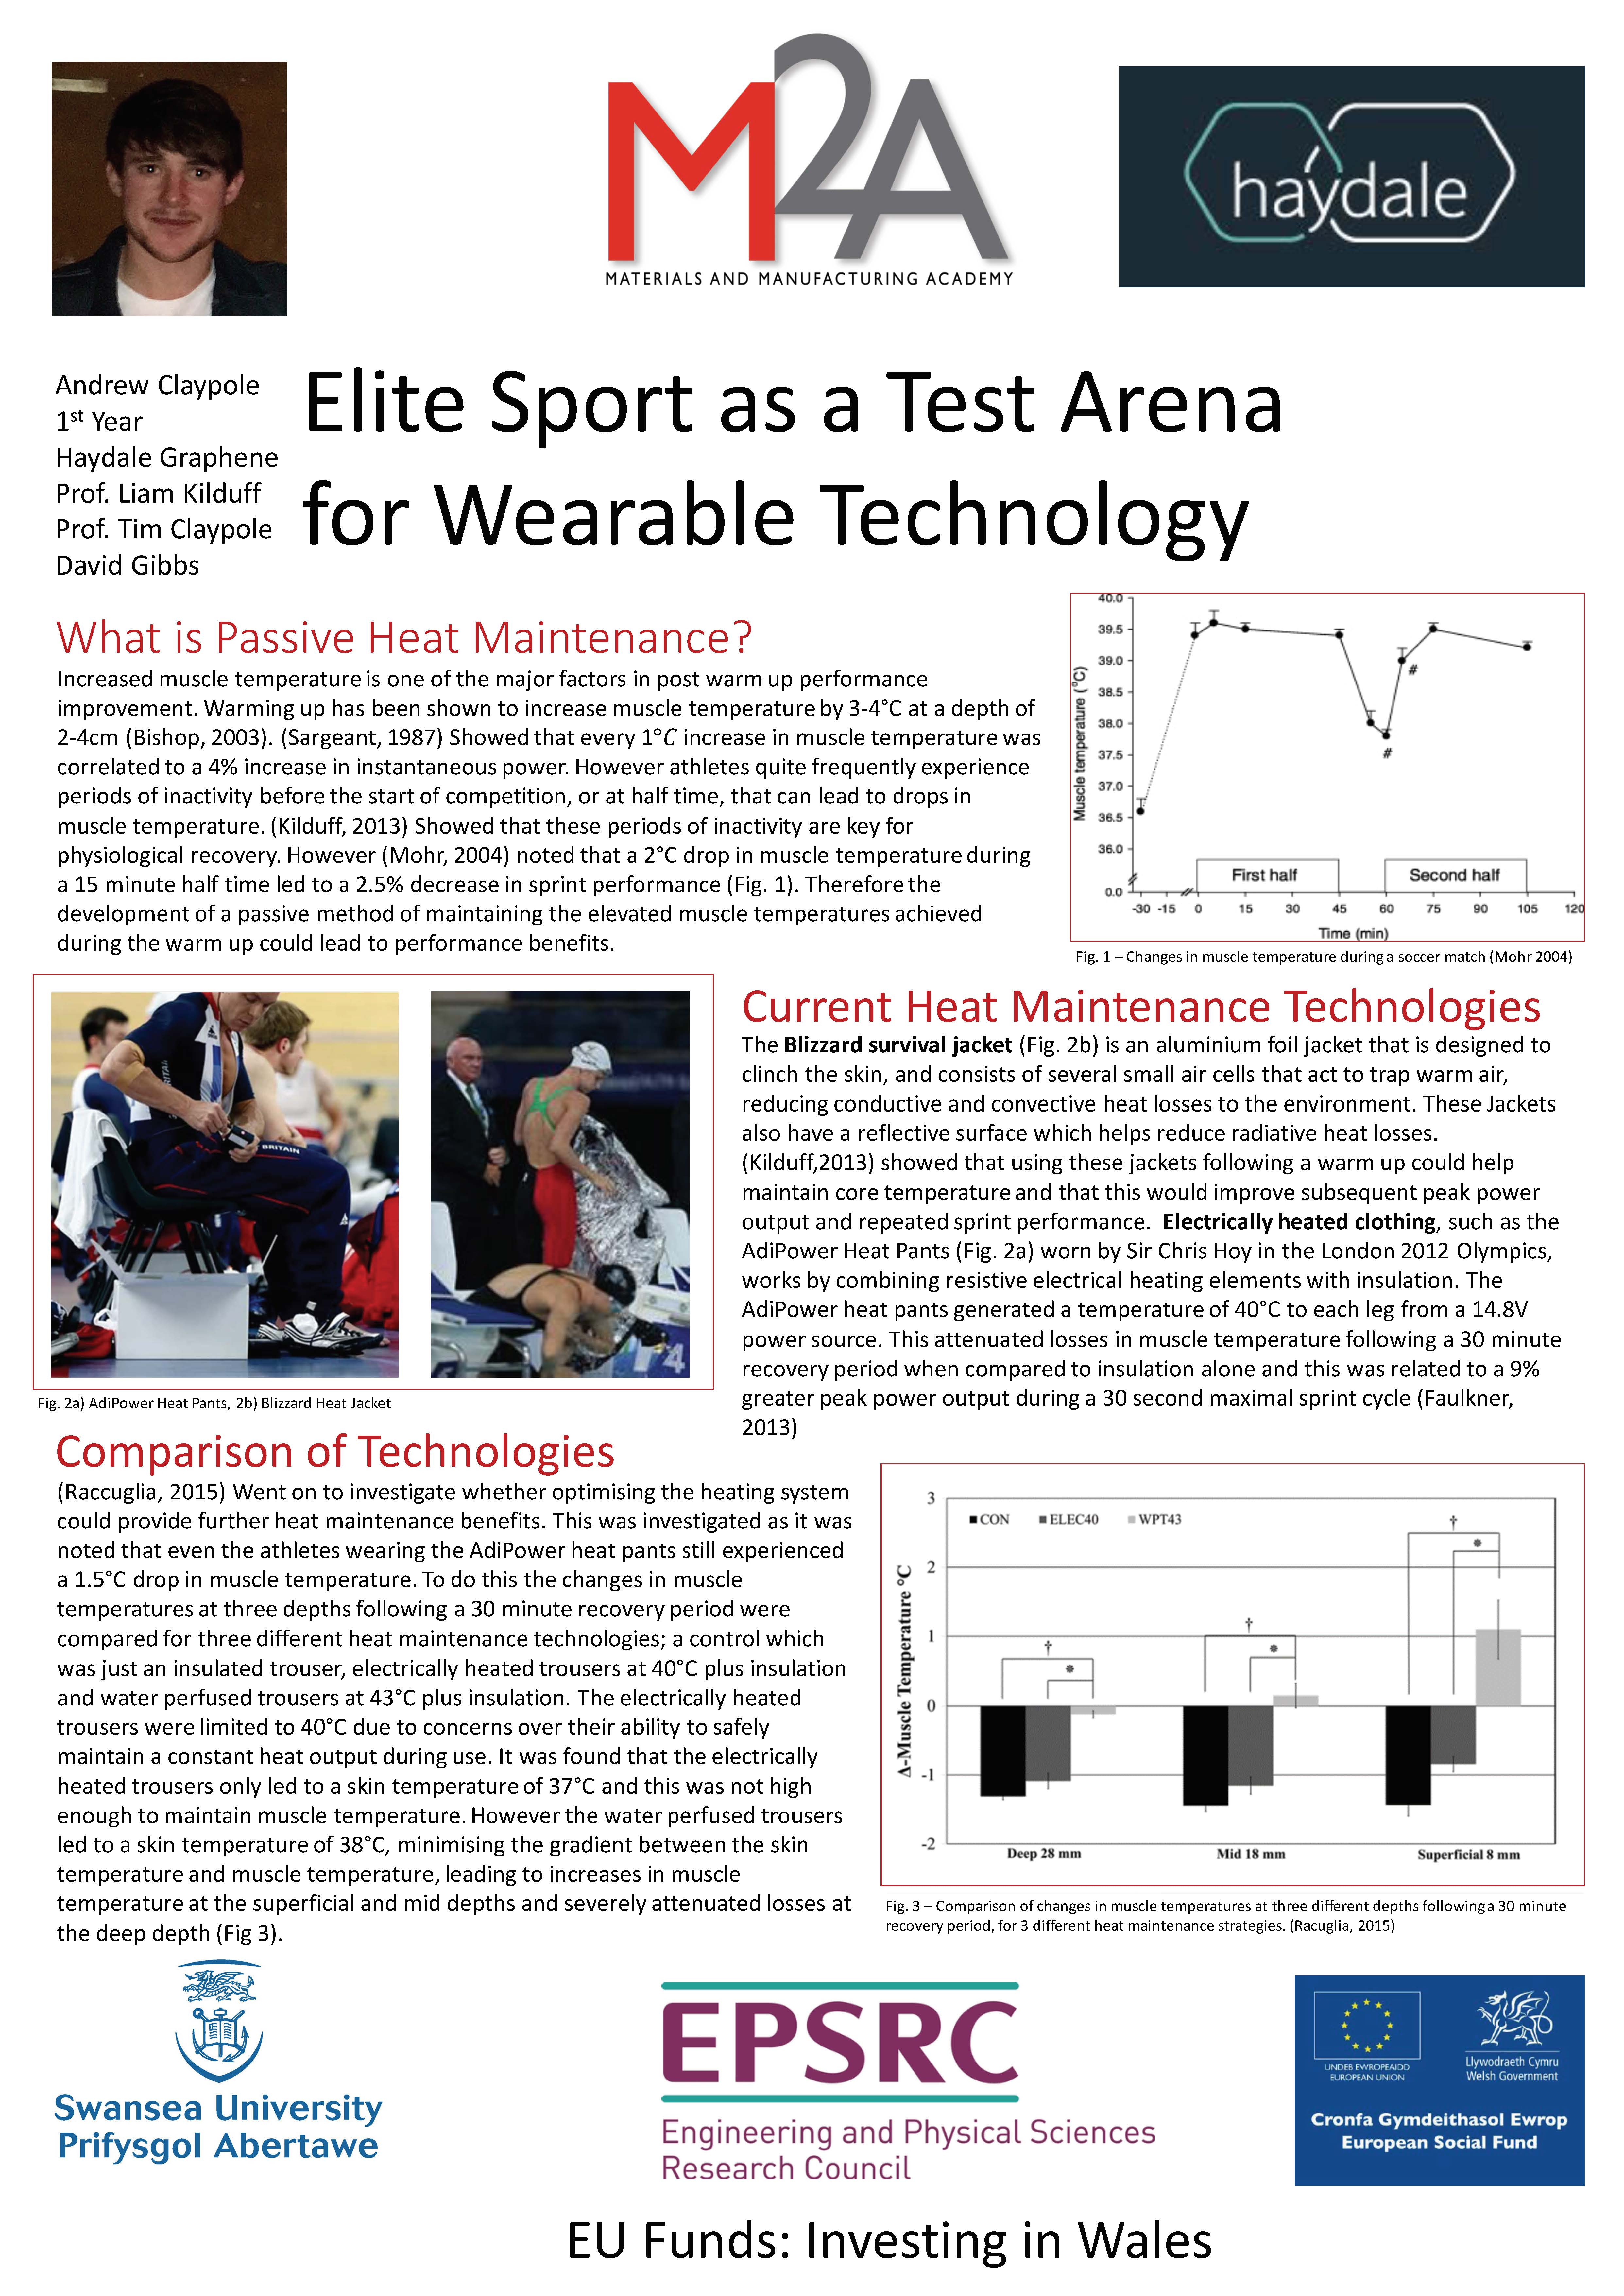 Elite Sport as a Test Arena for Wearable Technology